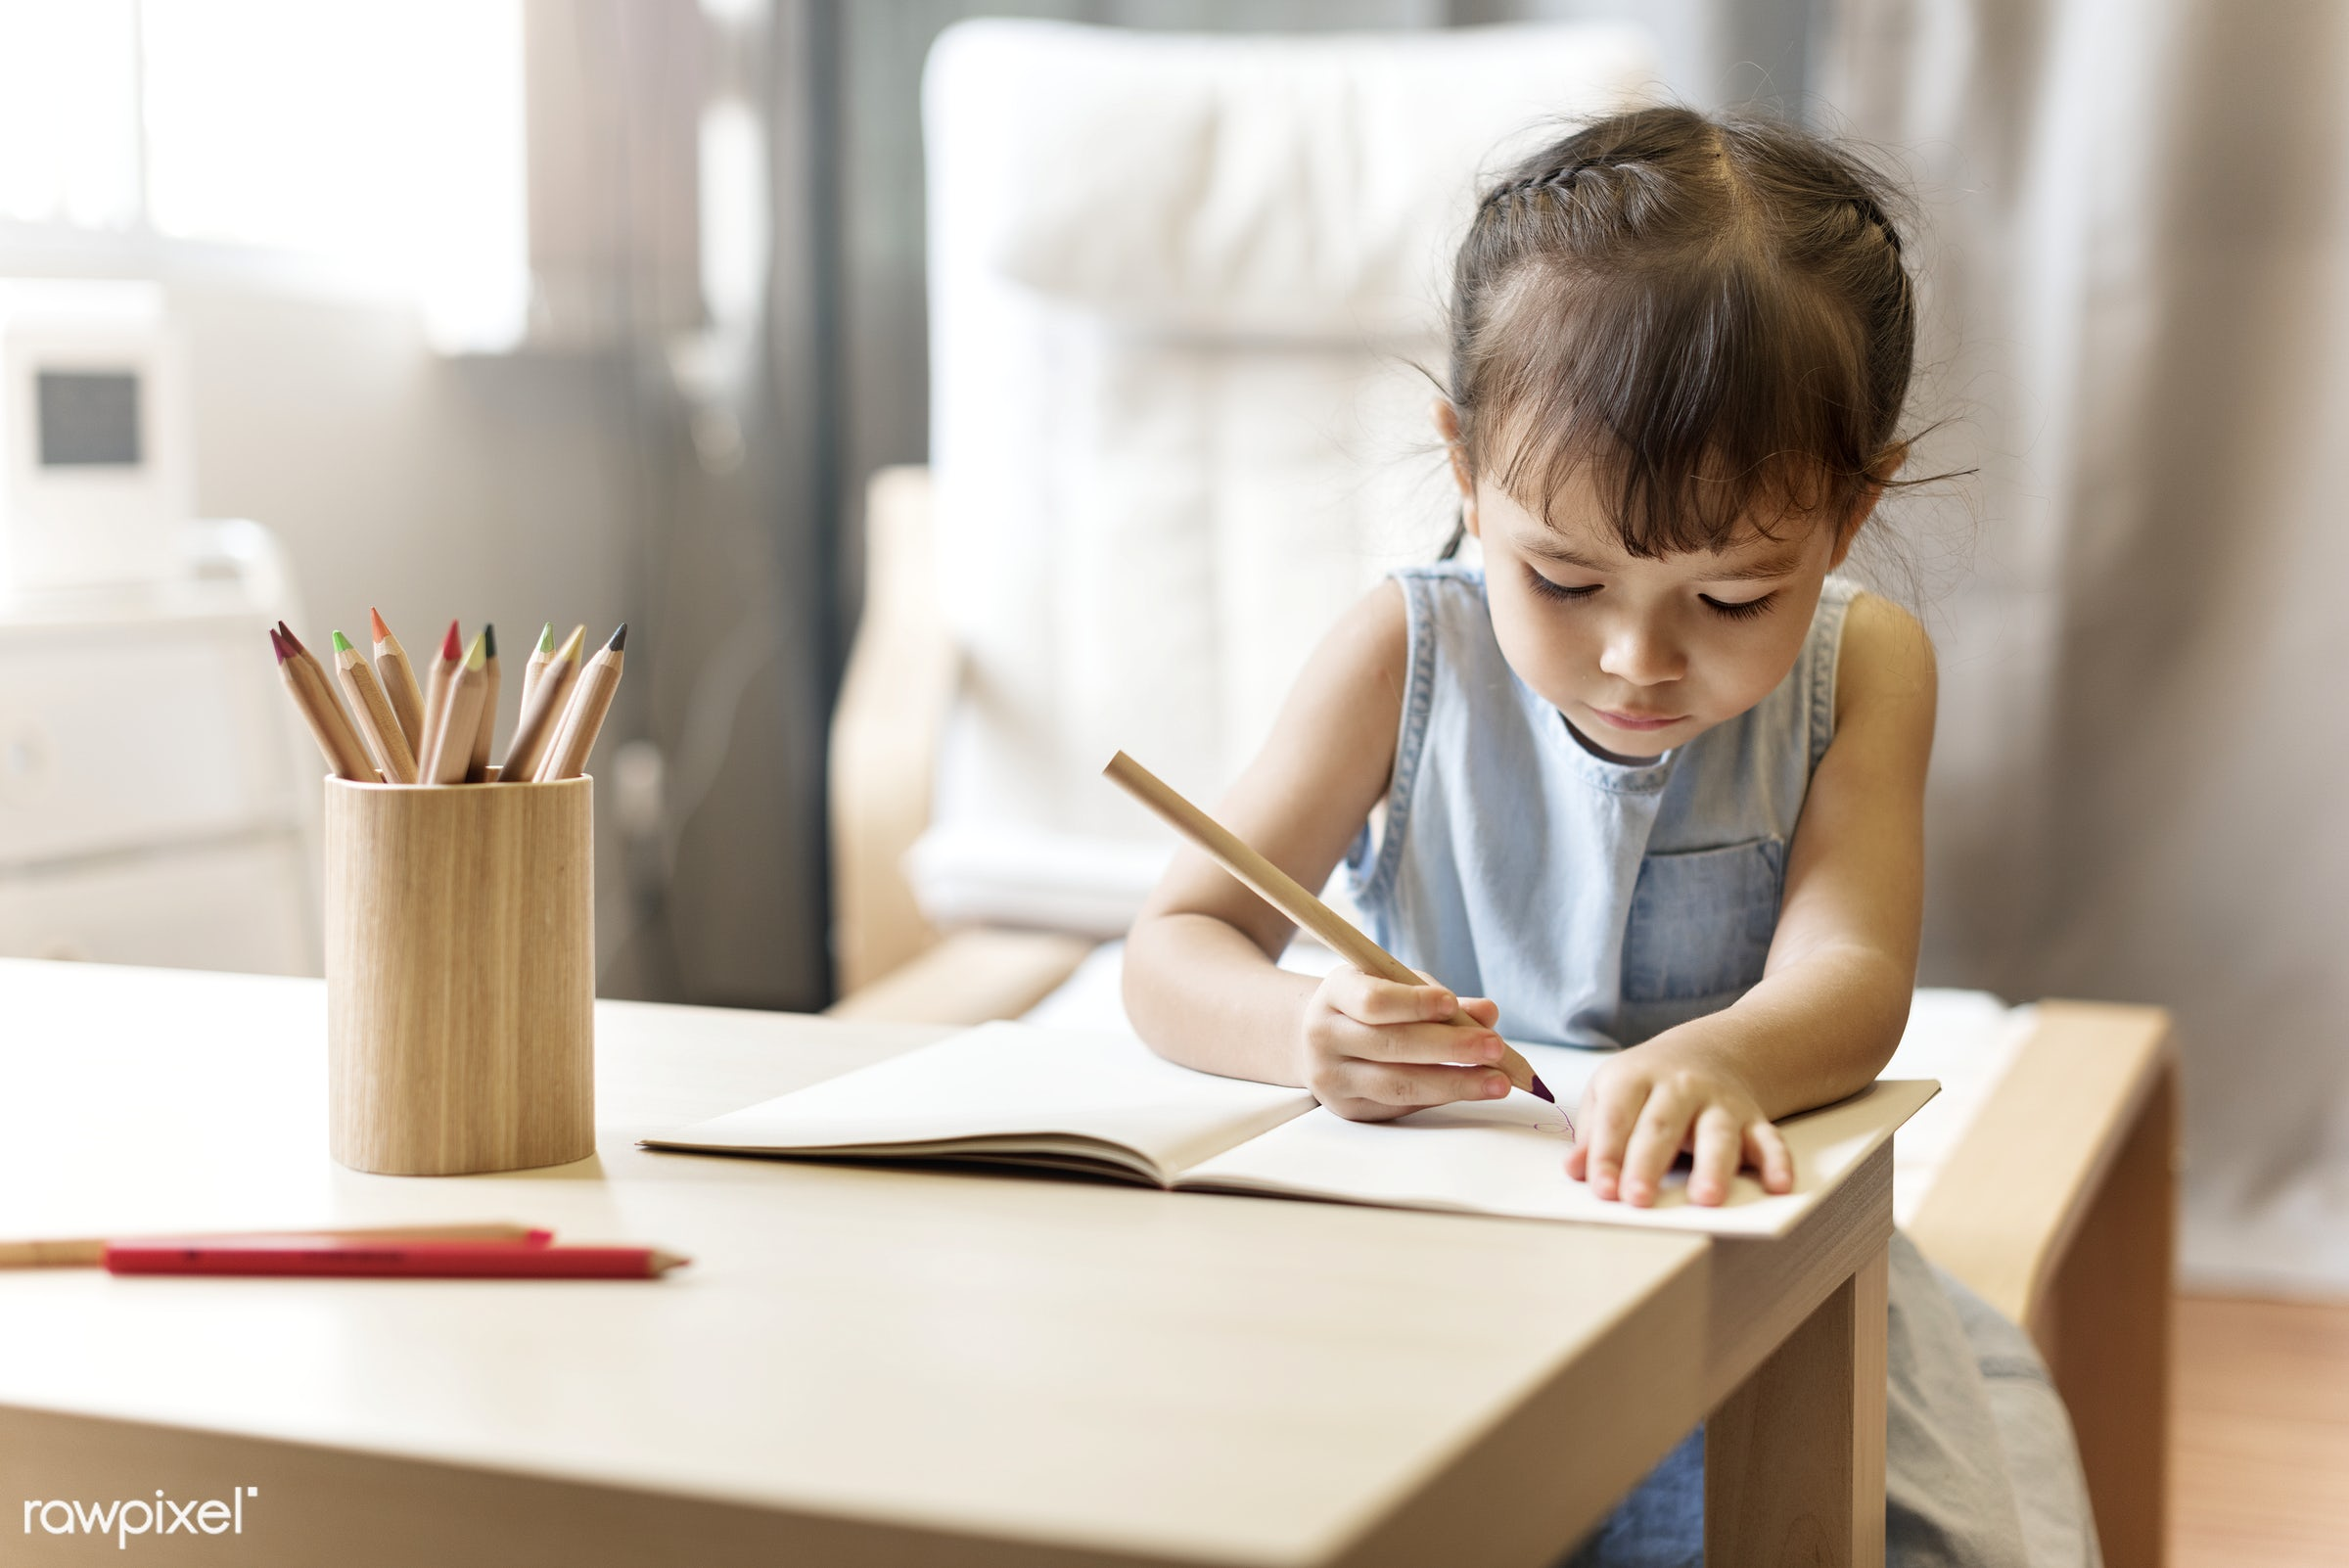 activity, adolescence, casual, cheerful, child, childhood, children, cute, drawing, education, enjoyment, equipment, female...